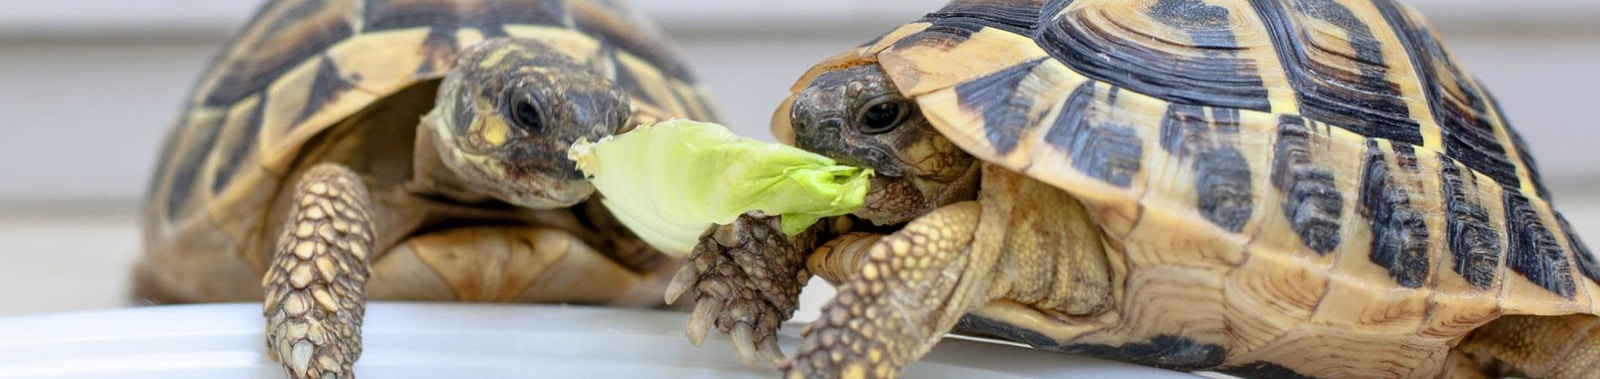 A Quick Guide to Caring for Your Turtle